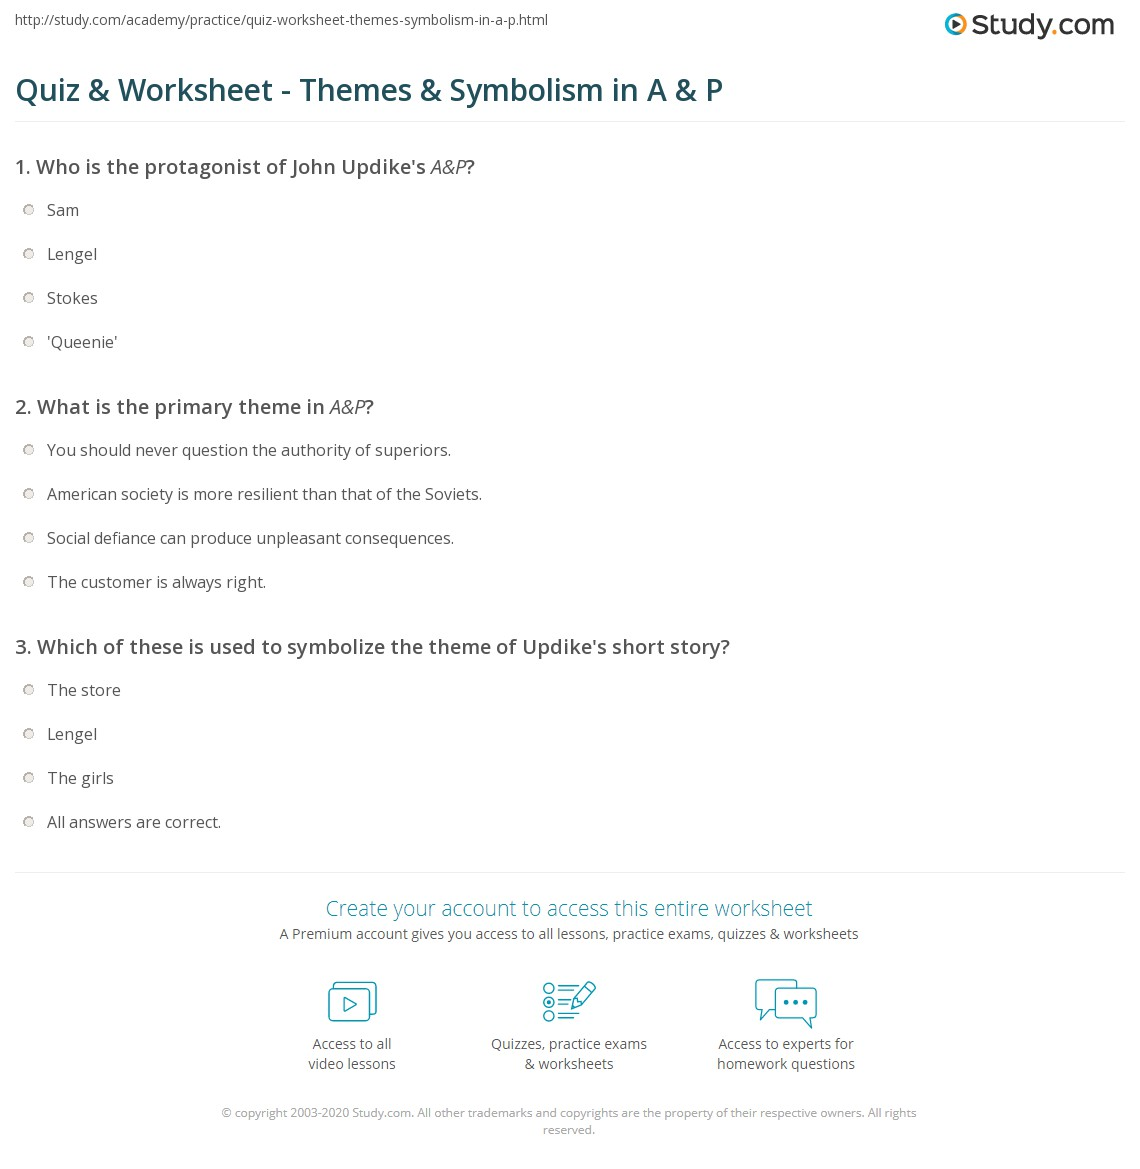 quiz worksheet themes symbolism in a p com print a p by john updike theme symbolism worksheet